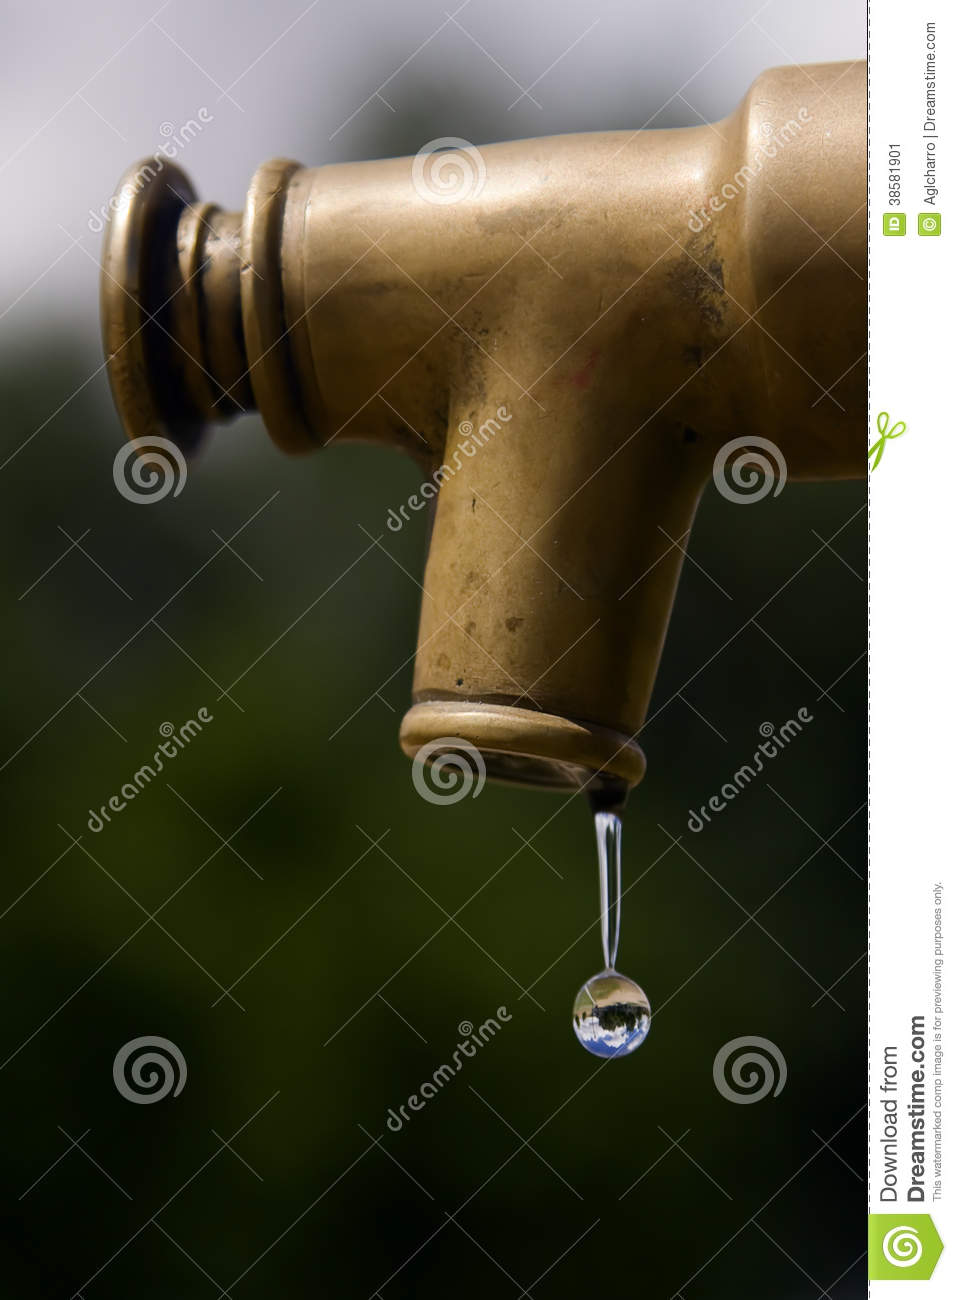 Faucet stock image. Image of column, pipe, metal, rusty - 38581901